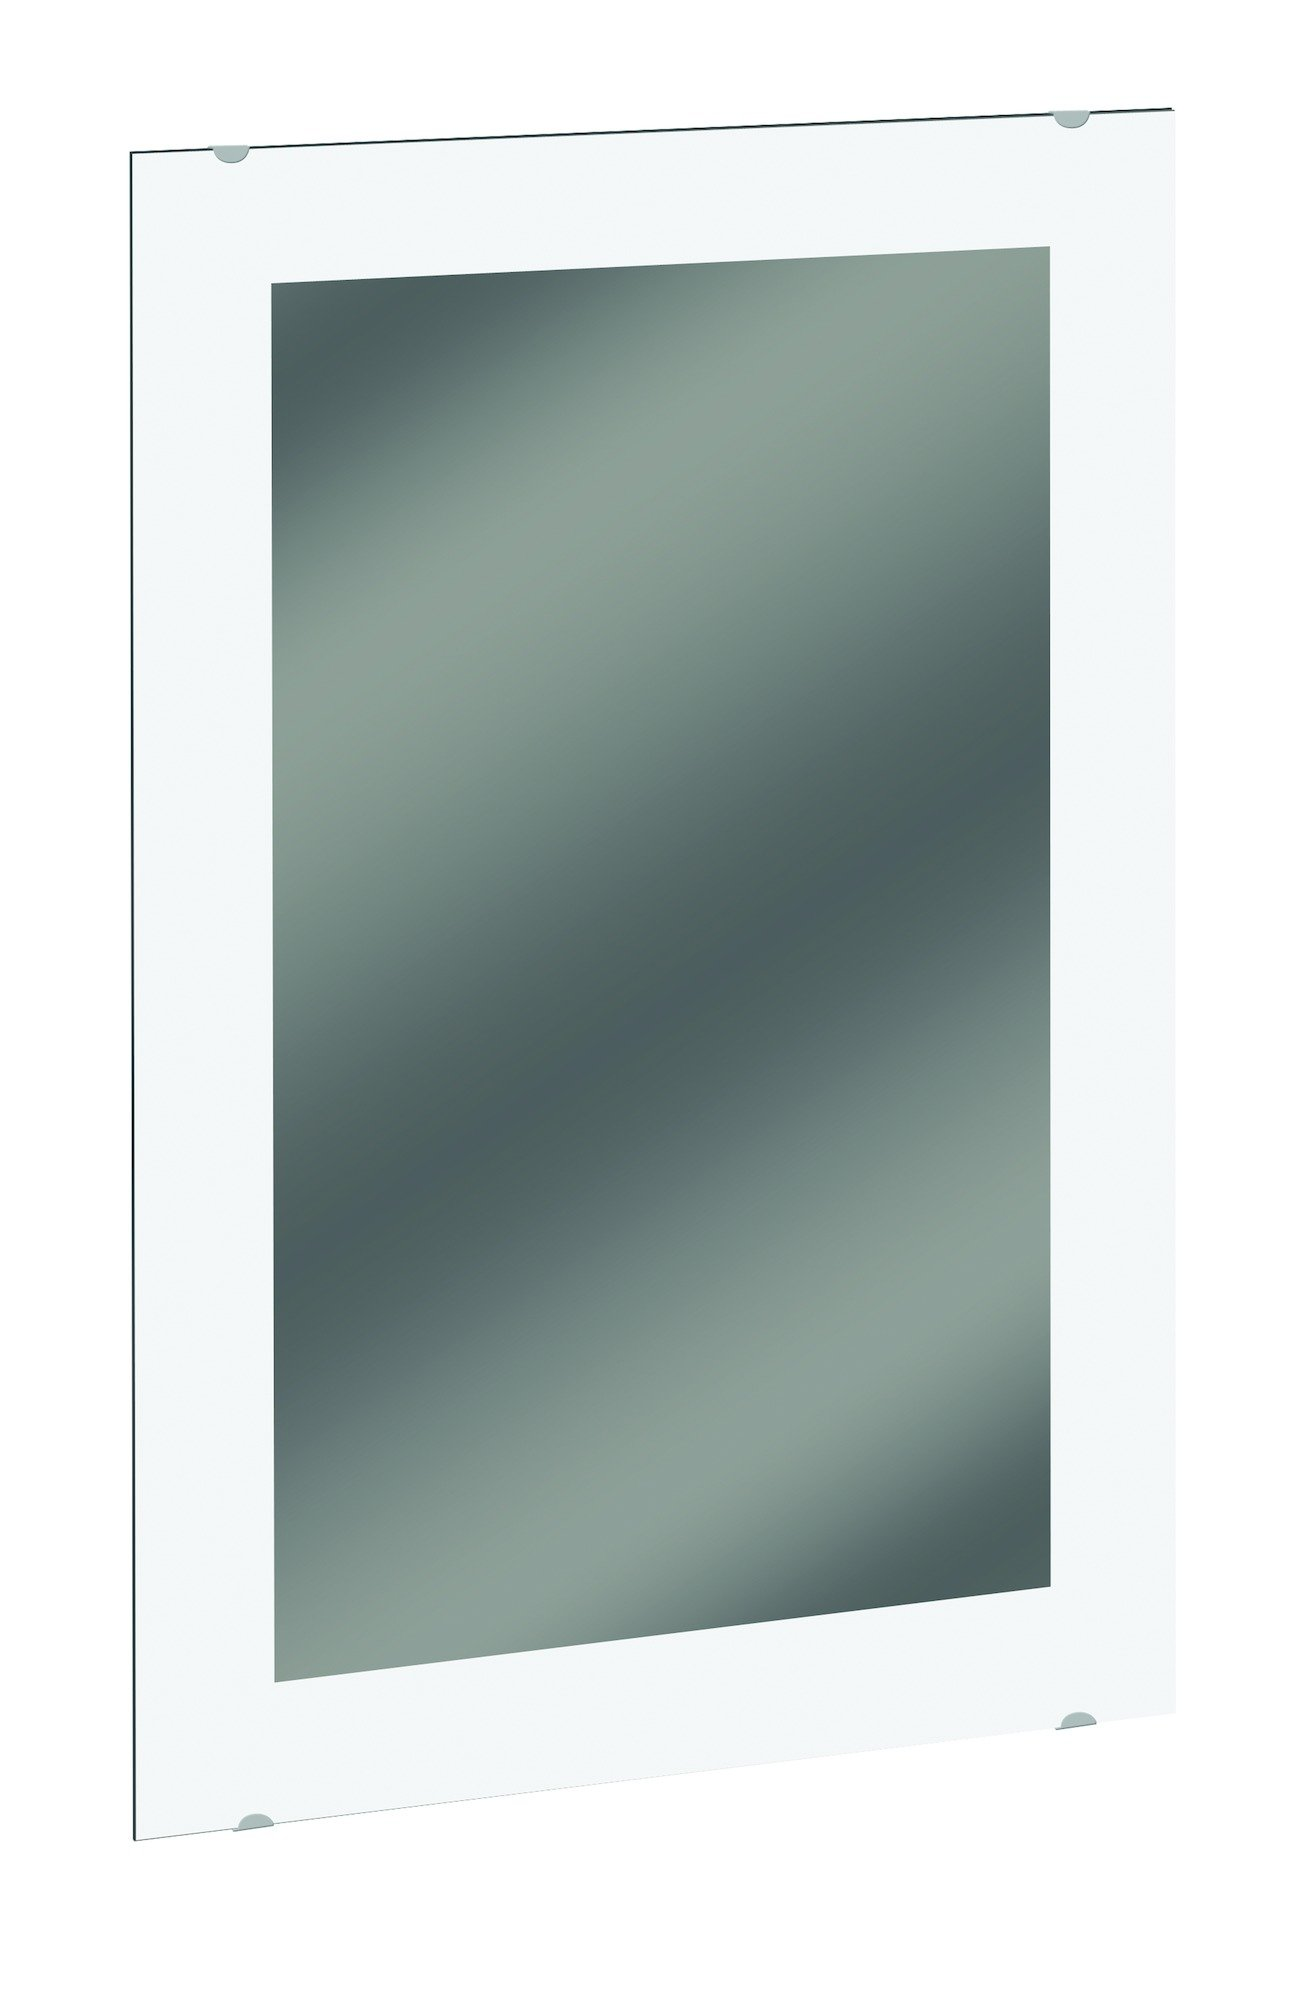 Frameless Mirror 24x36, 747F | Accurate Door & Hardware, Inc